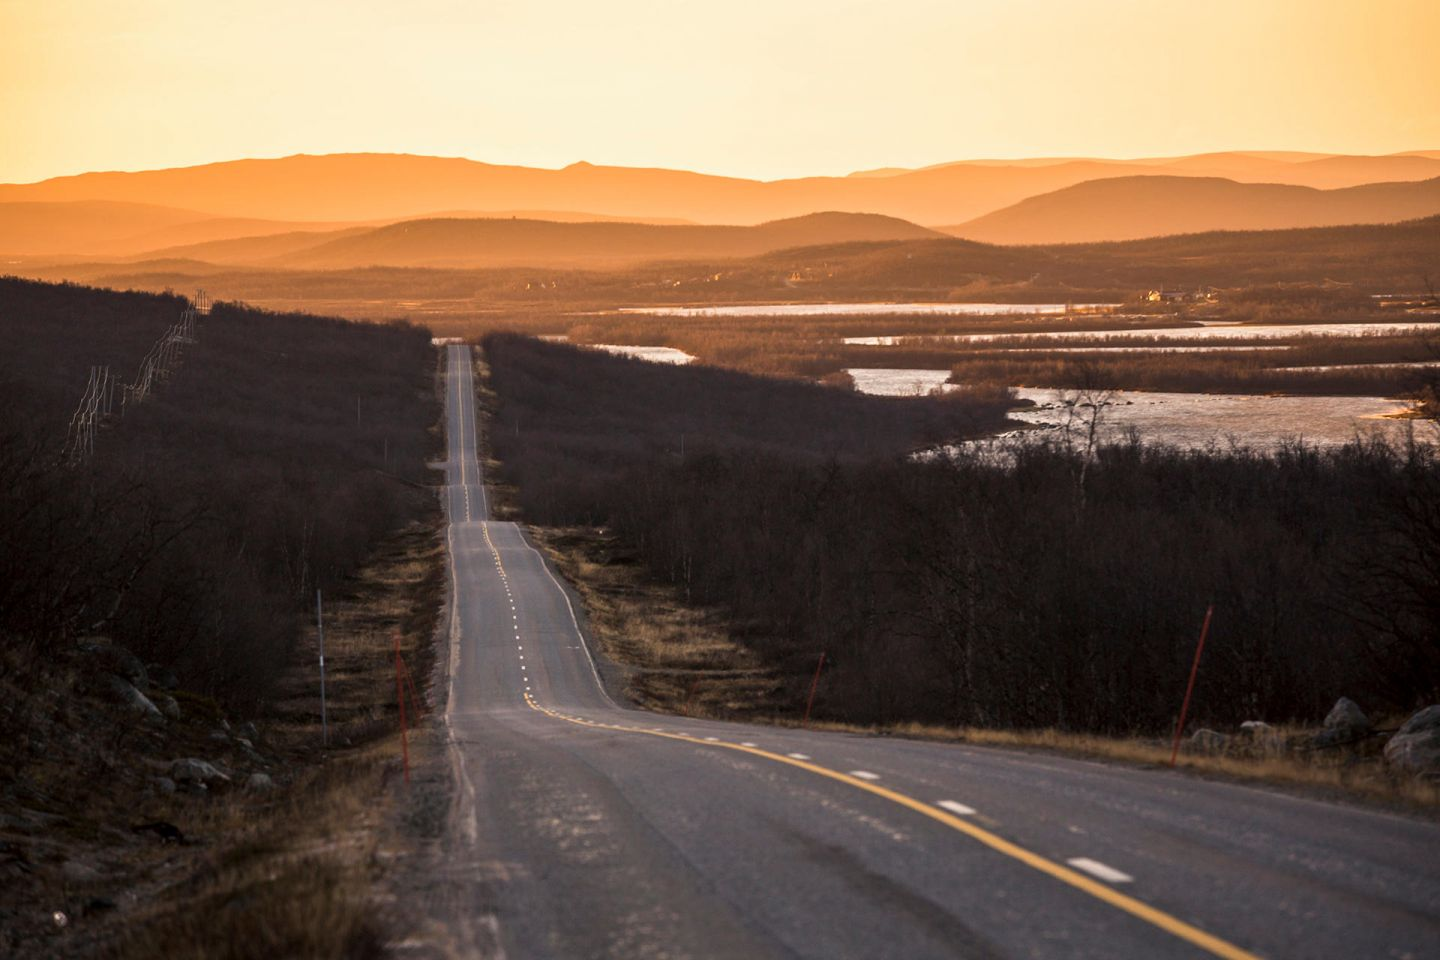 A highway in Enontekiö during sunset